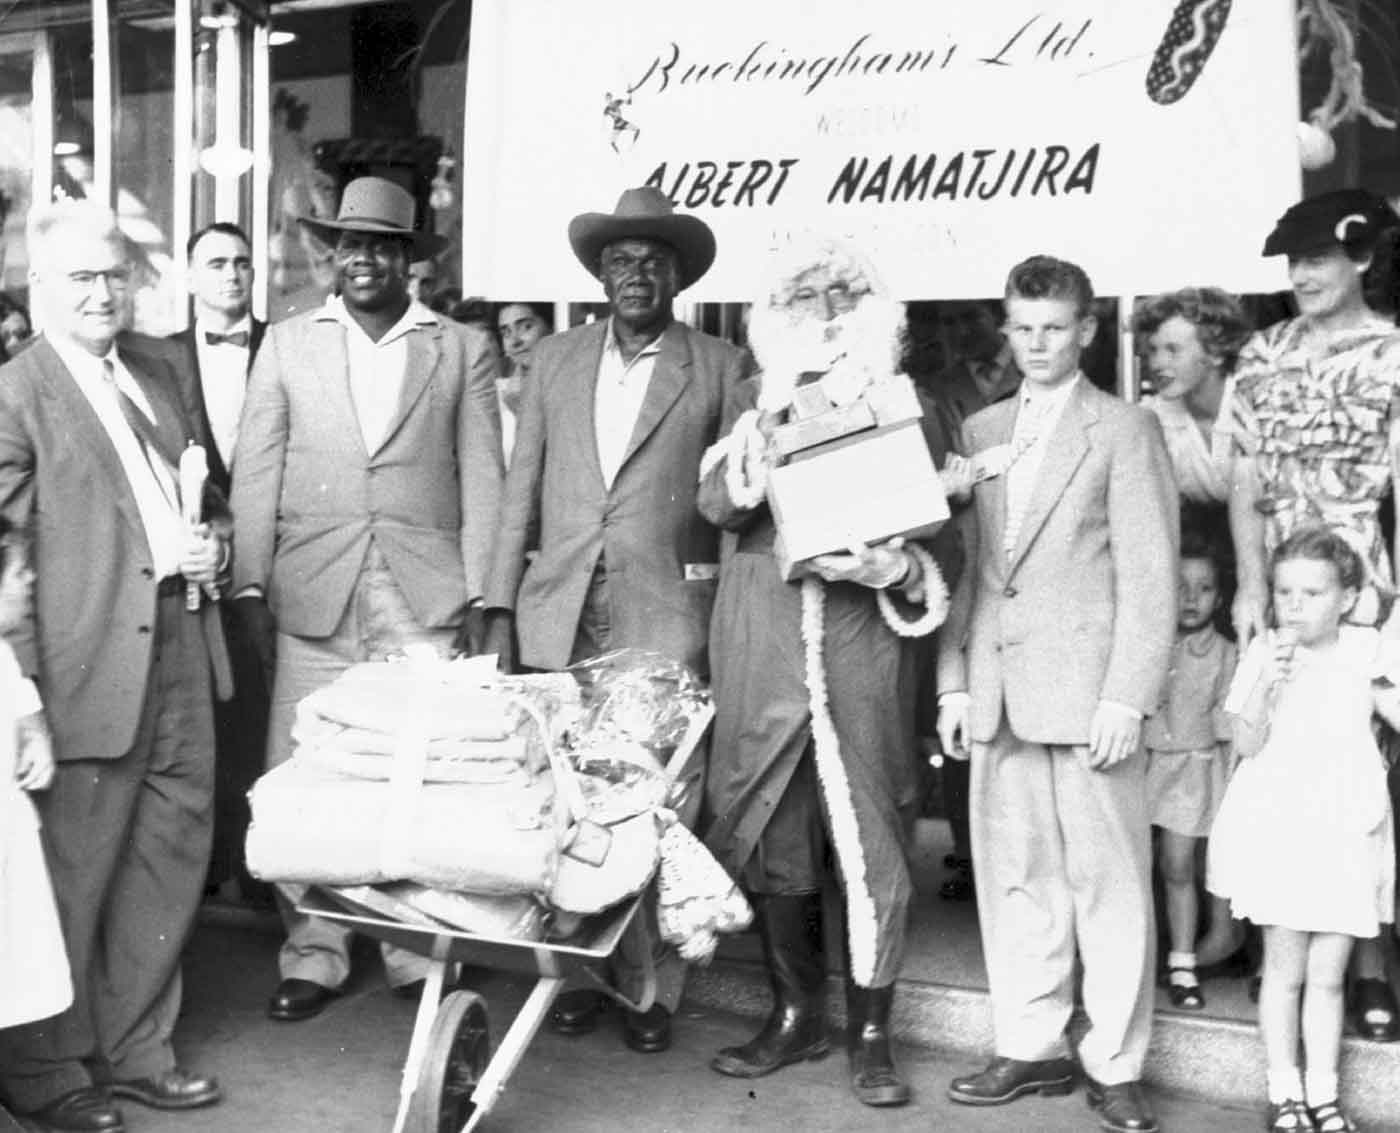 Black and white photo of Albert Namatjira with a group of townsfolk standing in front of a banner that reads: 'Buckinghams Ltd. ALBERT NAMATJIRA'. He is holding a wheelbarrow full of gifts and standing next to a man in a Santa Claus costume.